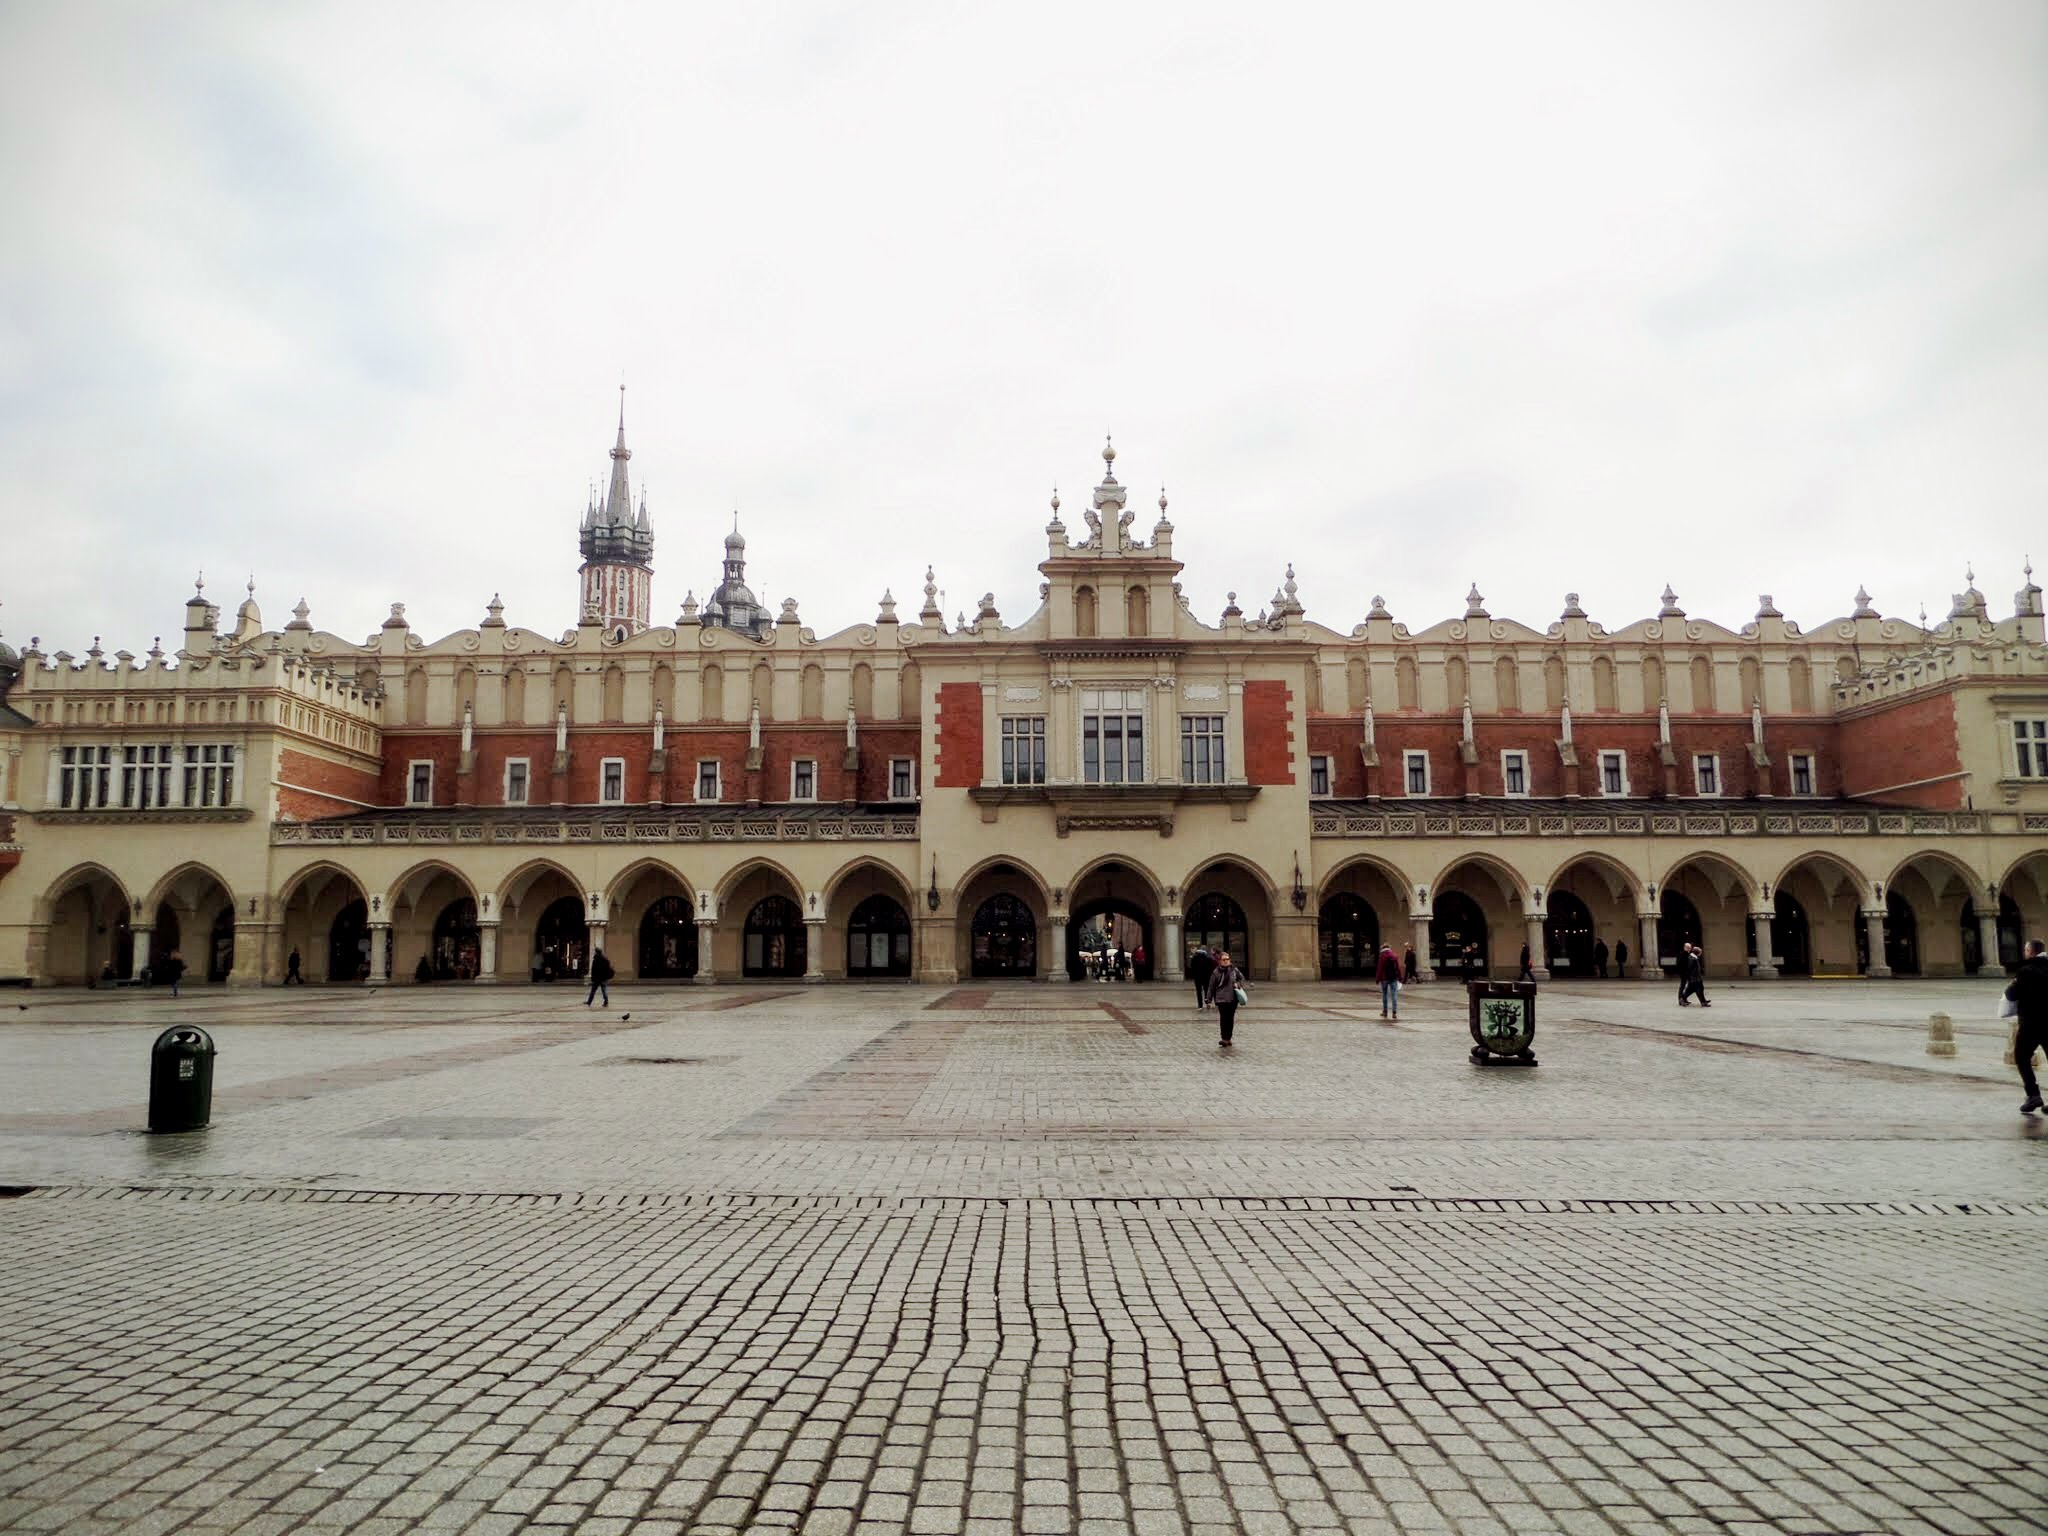 The Cloth Hall, Krakow